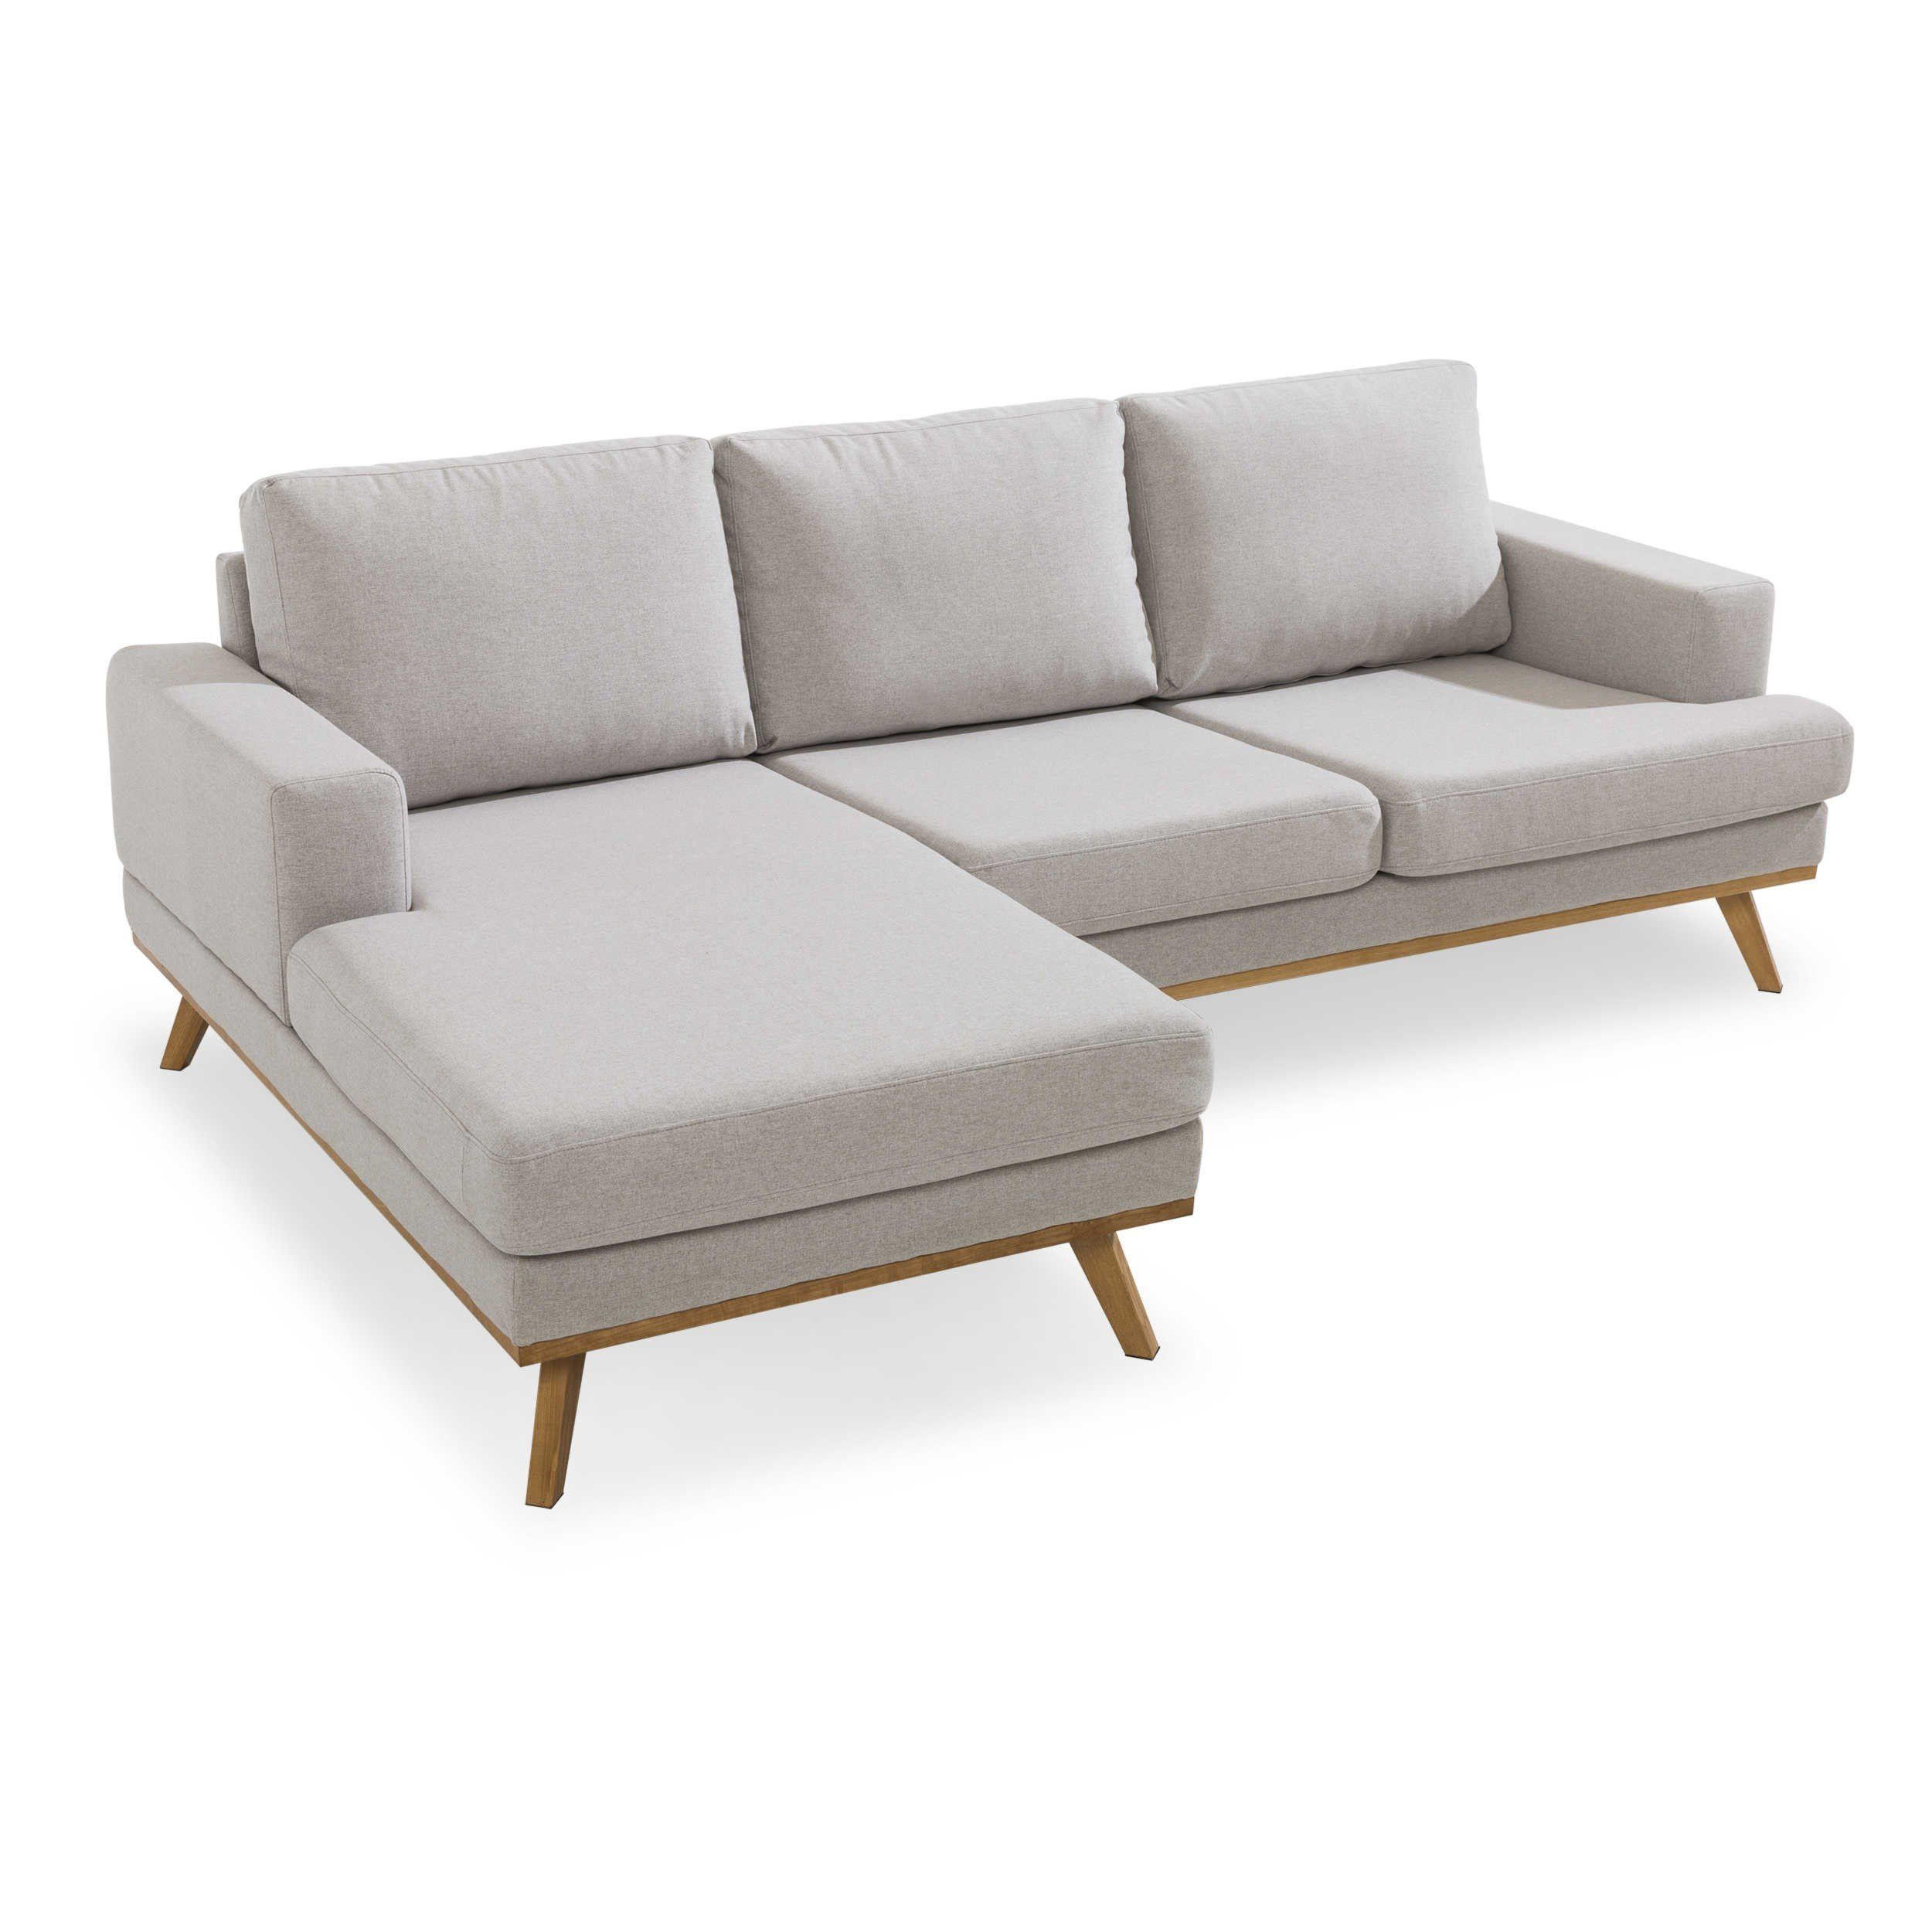 Ecksofa Norwich Ecksofa Norwich In 2019 House Sofa Furniture Und Couch